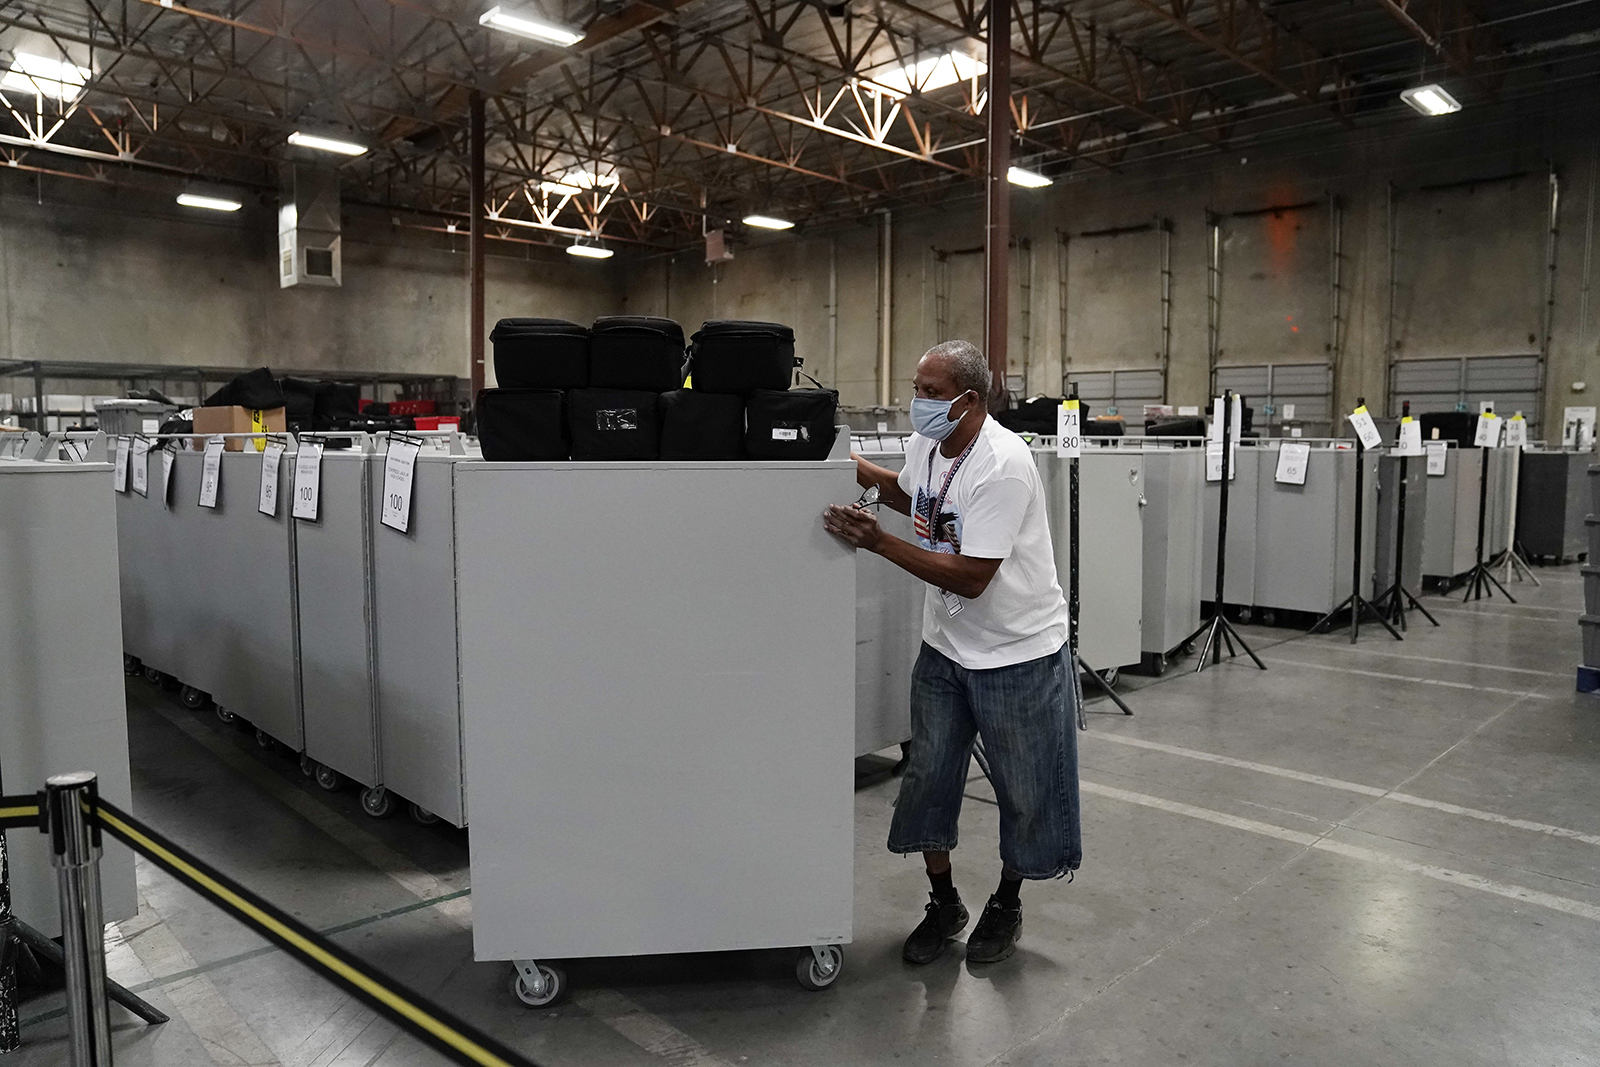 An election warehouse worker moves polling place equipment at the Clark County Election Department in North Las Vegas, Nevada on Friday.